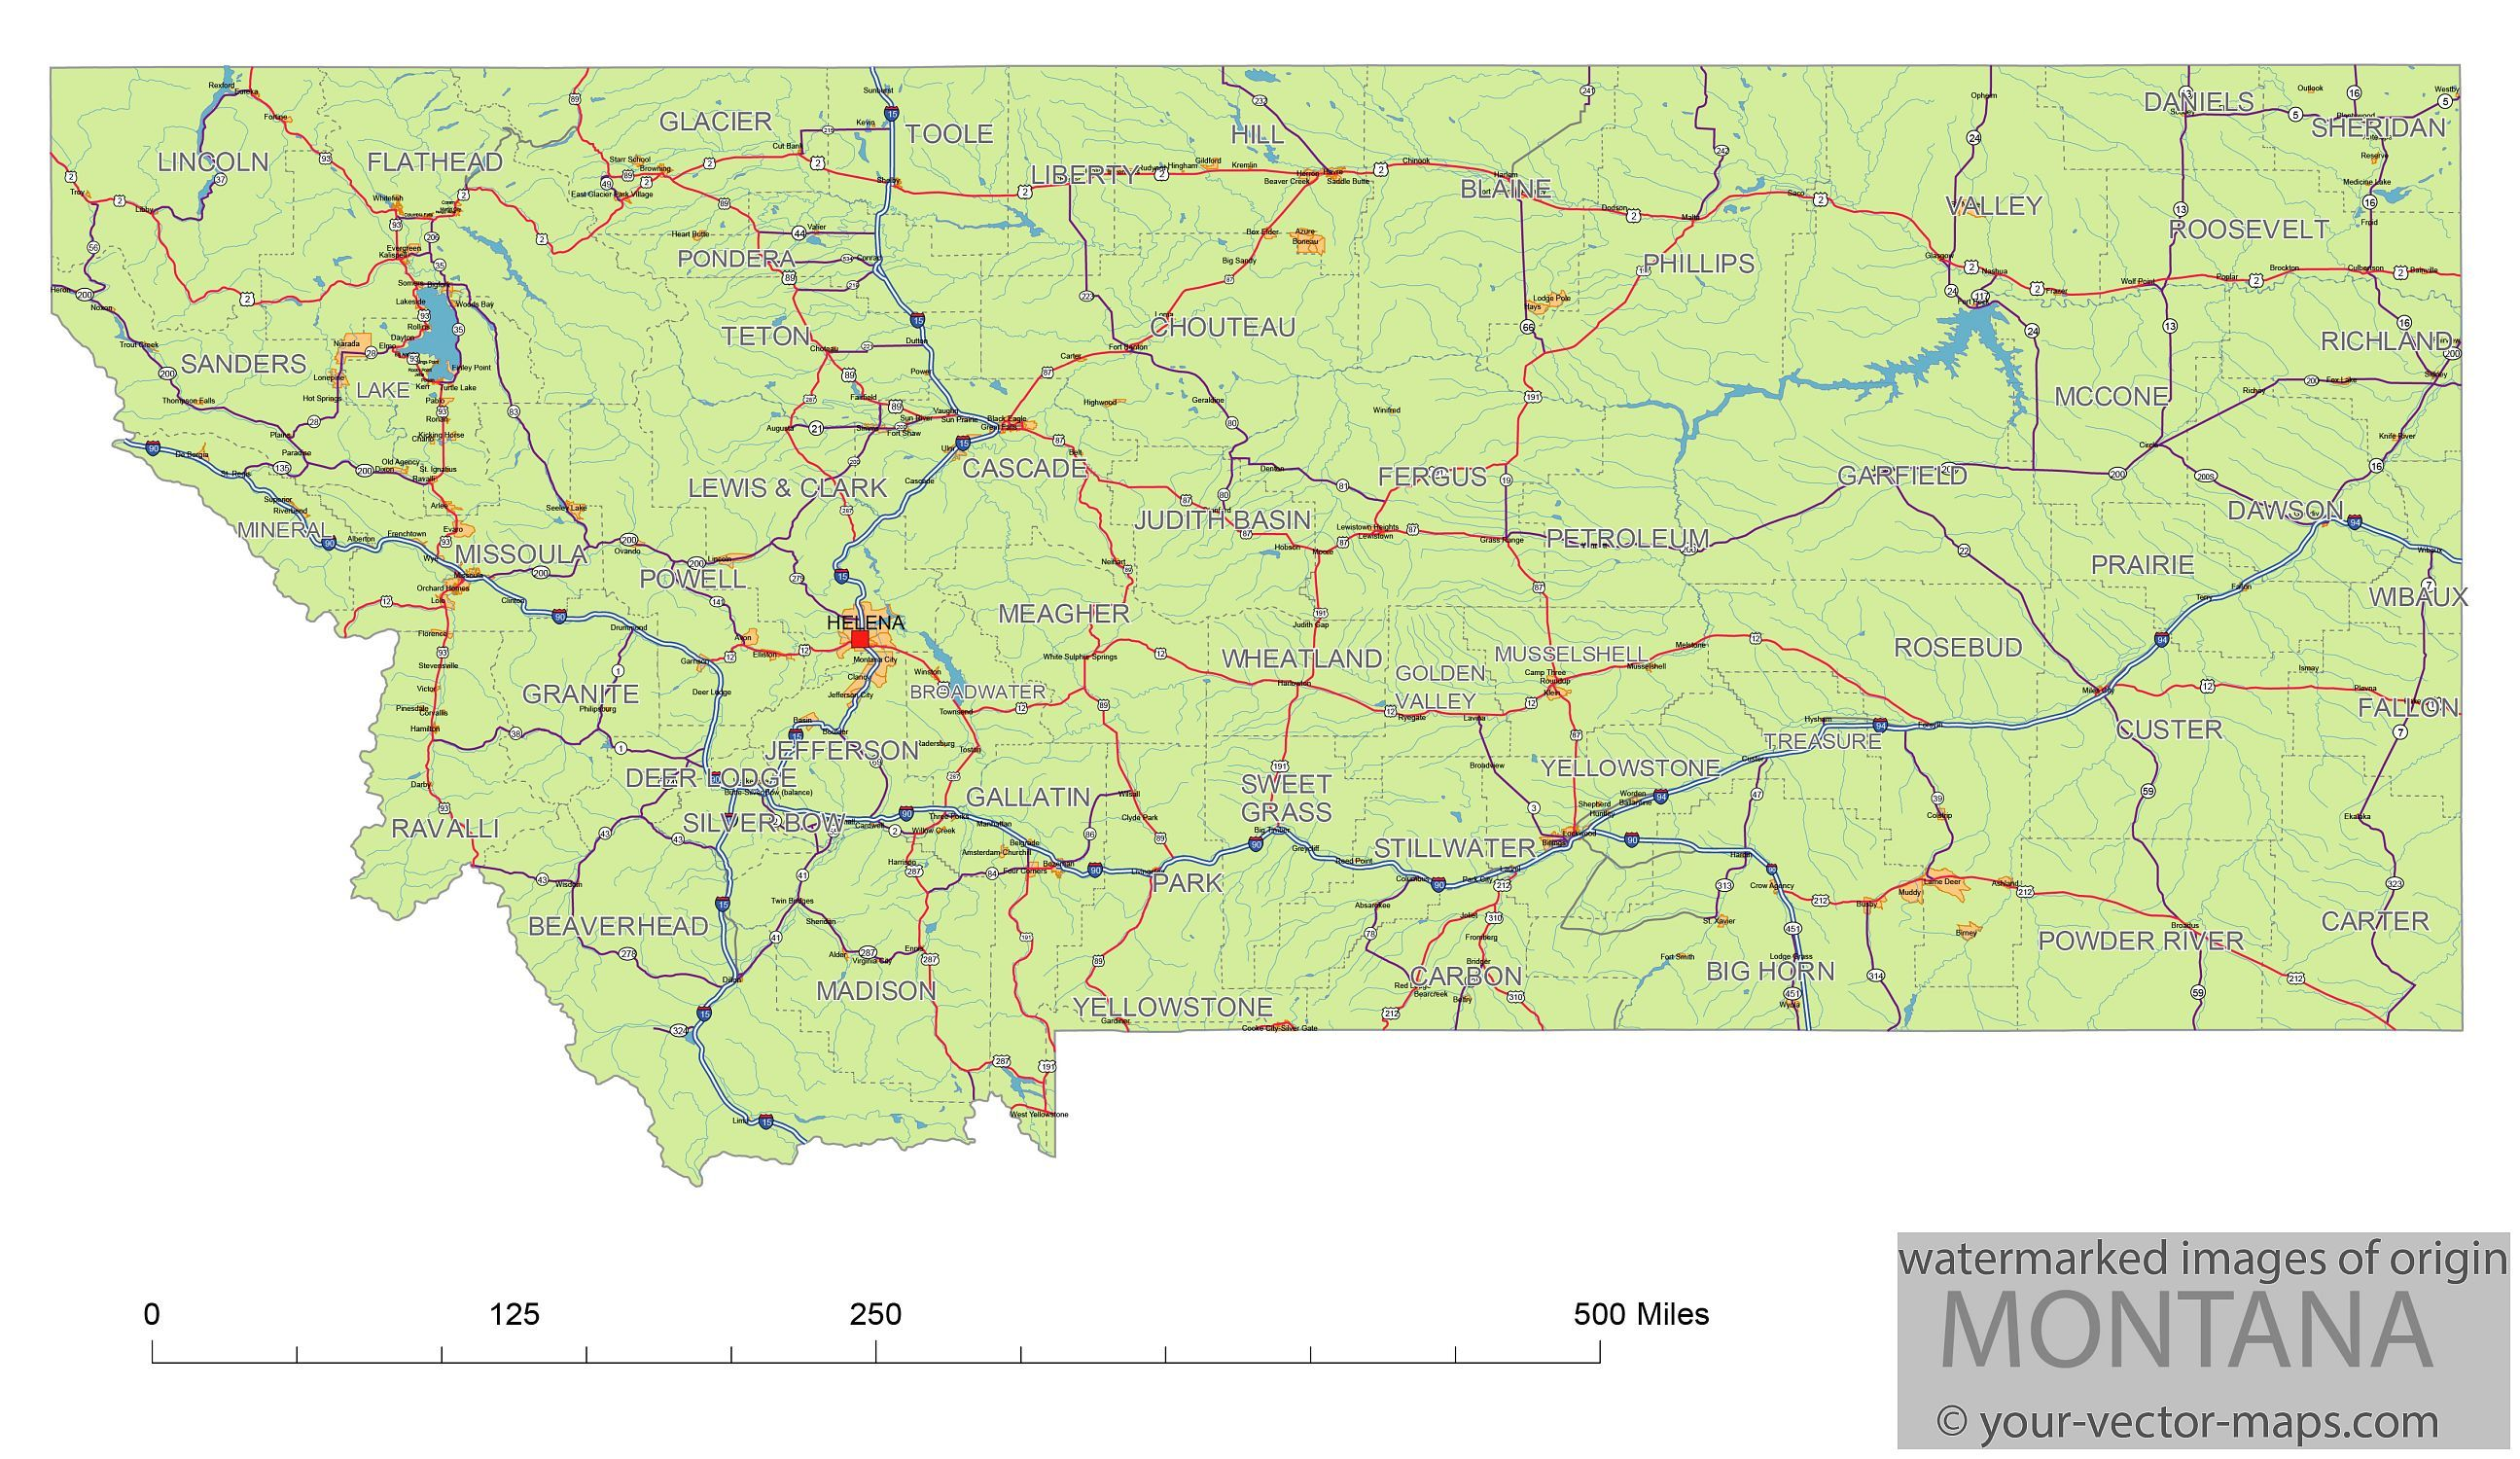 Montana state route network map. Montana highways map ...